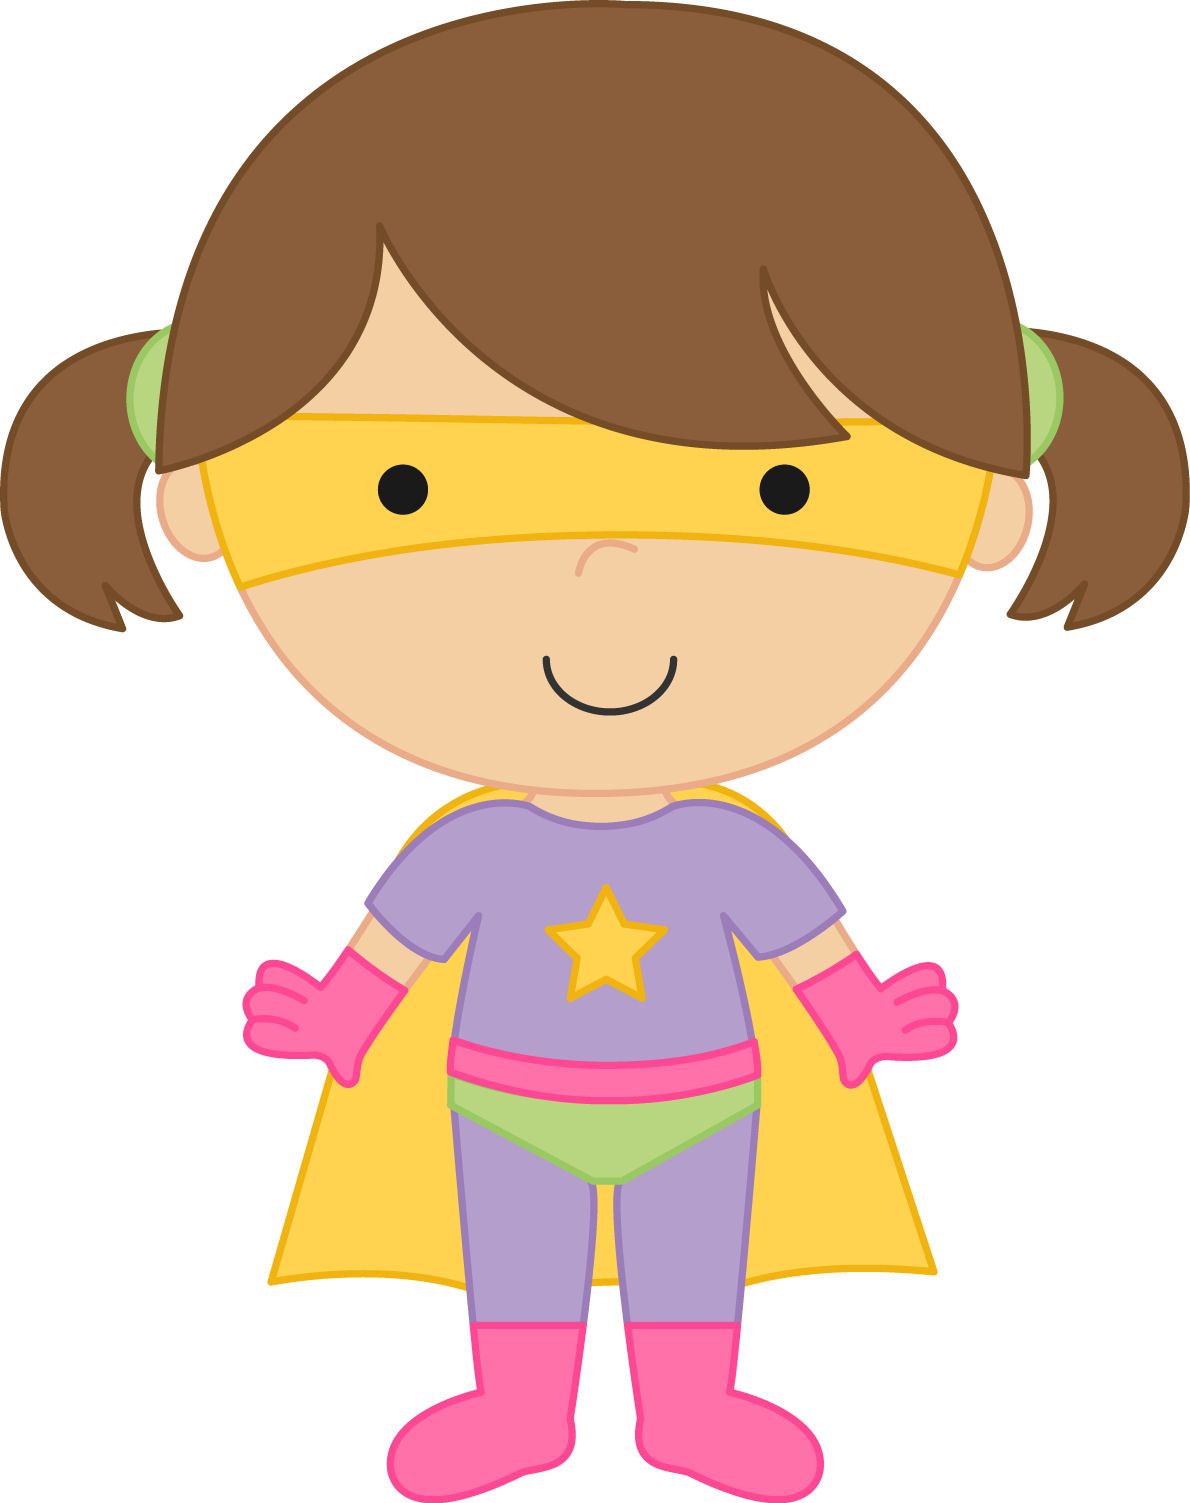 Supergirl Clipart - Clipart Kid